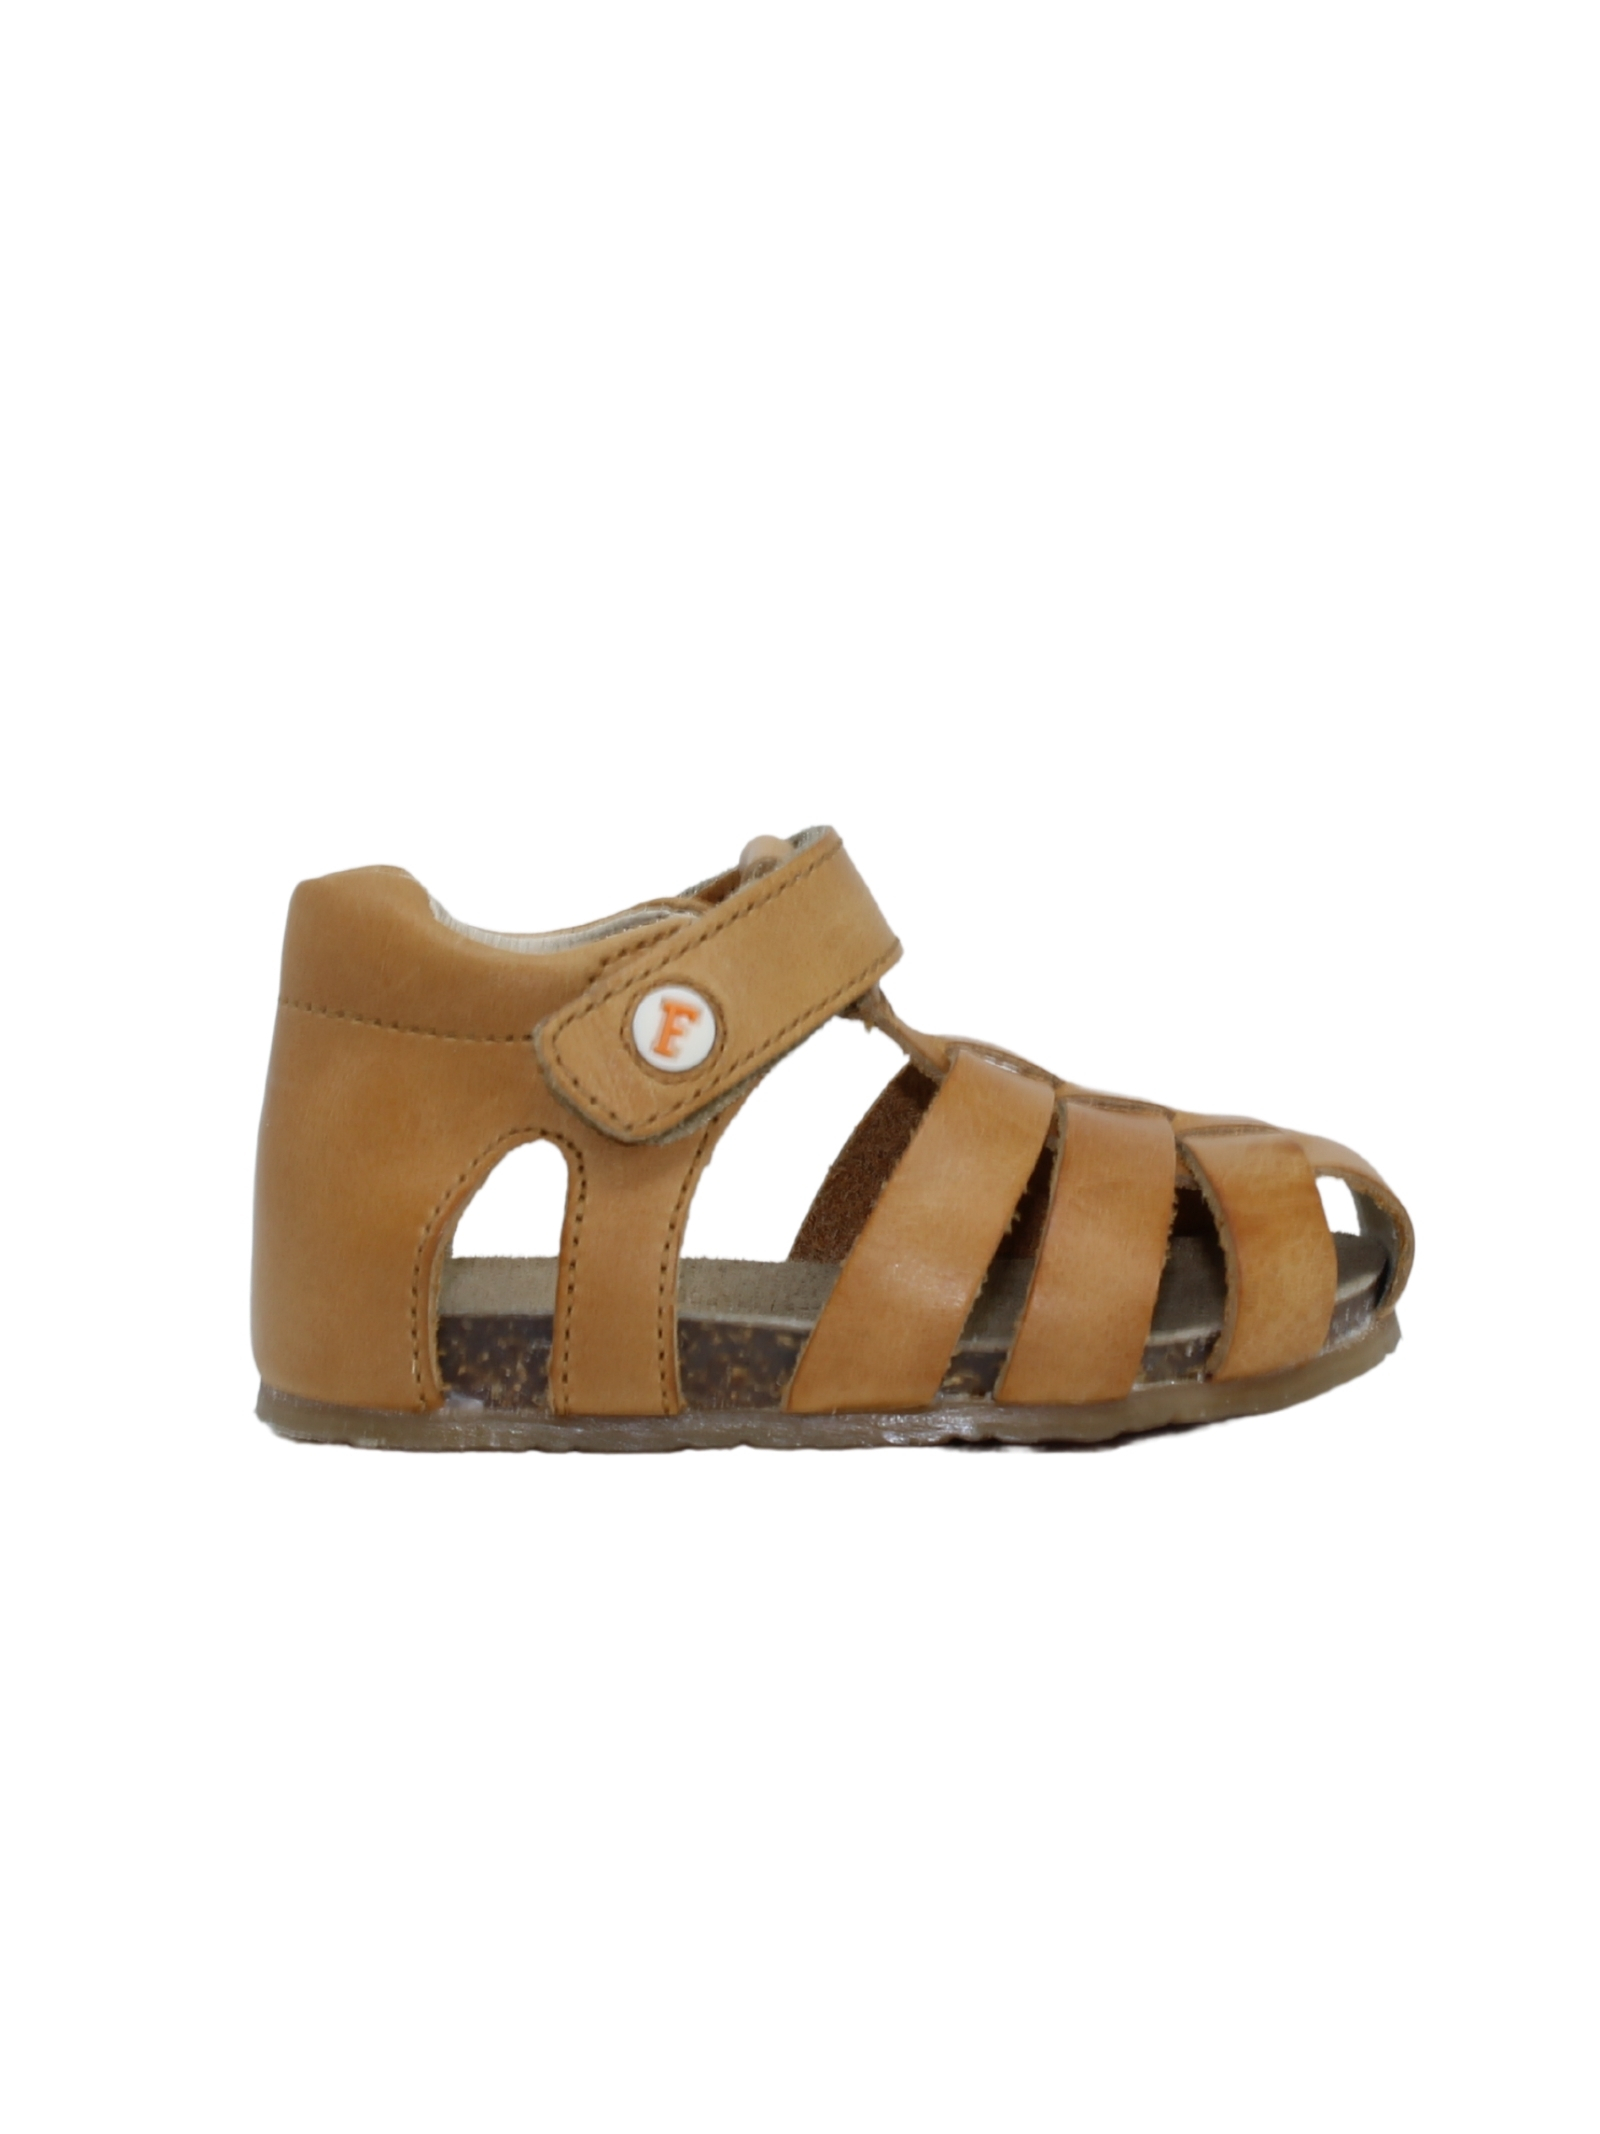 FALCOTTO | closed sandals | 15007360G05